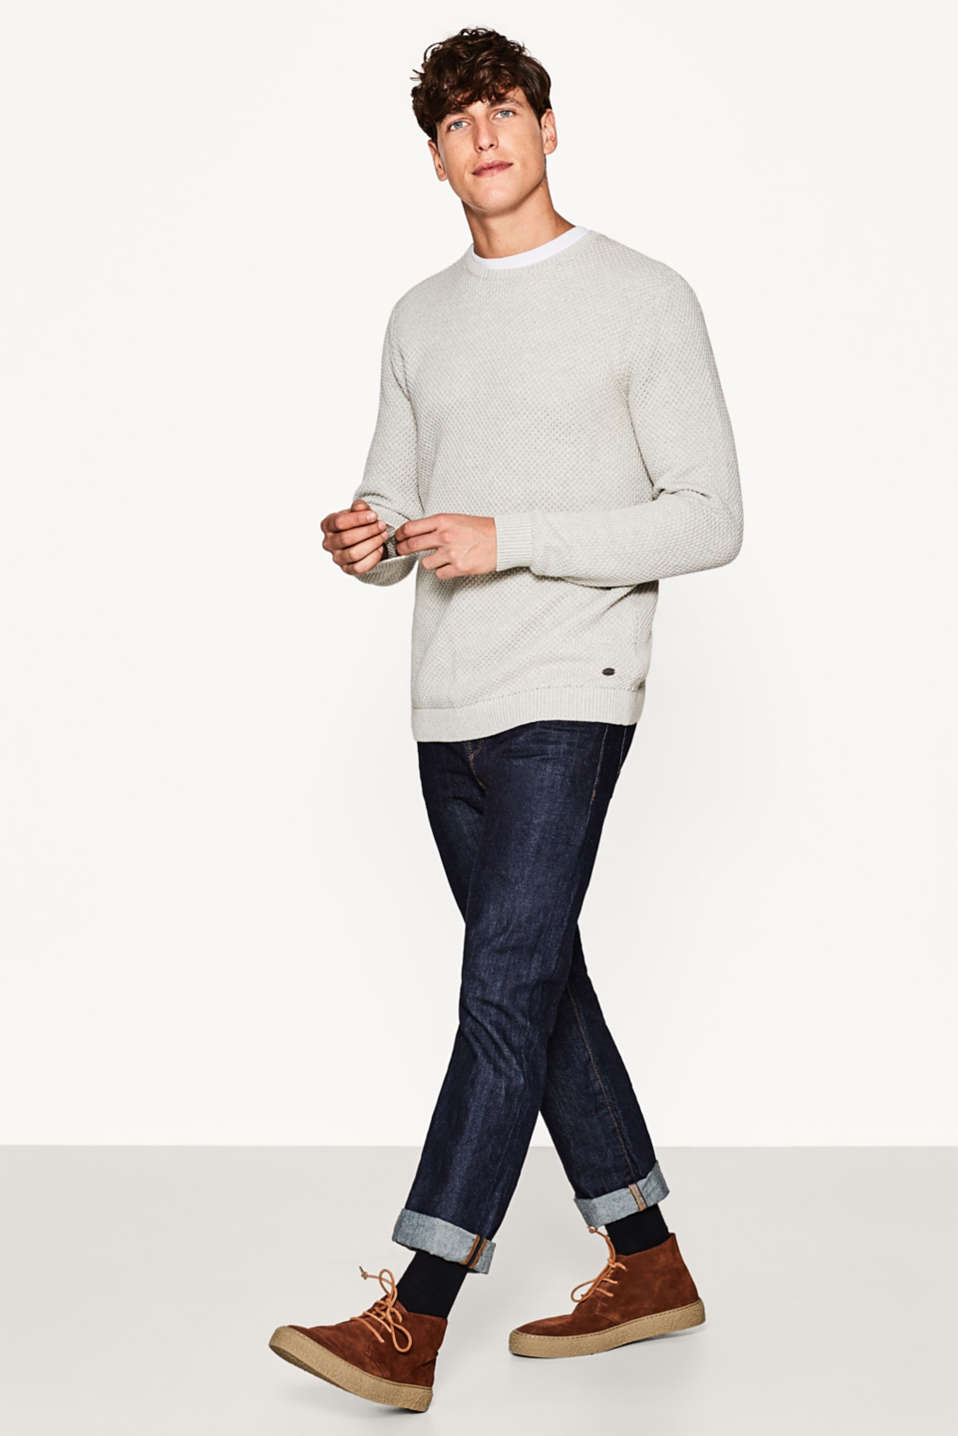 Textured knit jumper, cotton